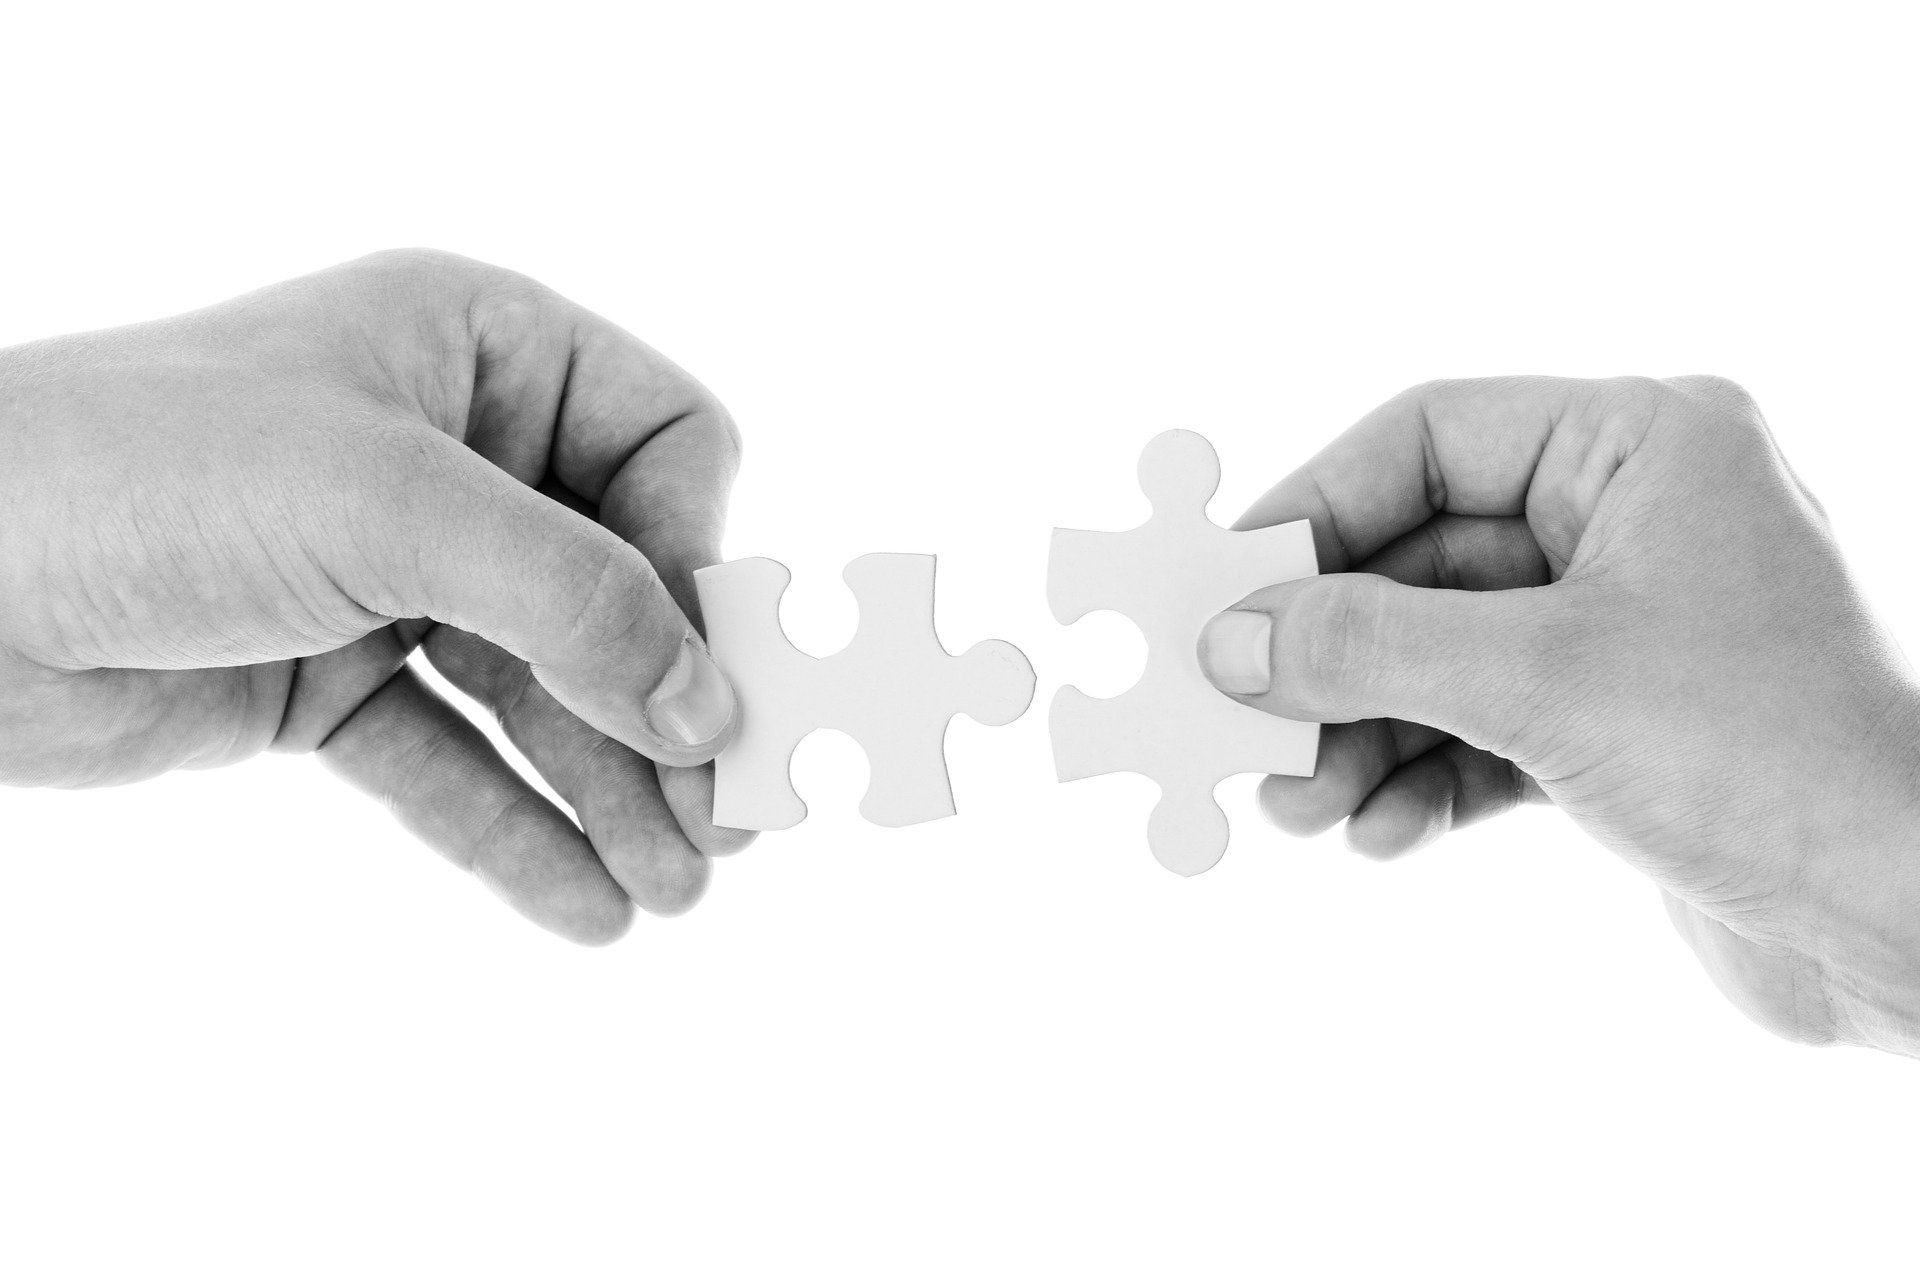 two hands holding two puzzle pieces to visualize a good connection